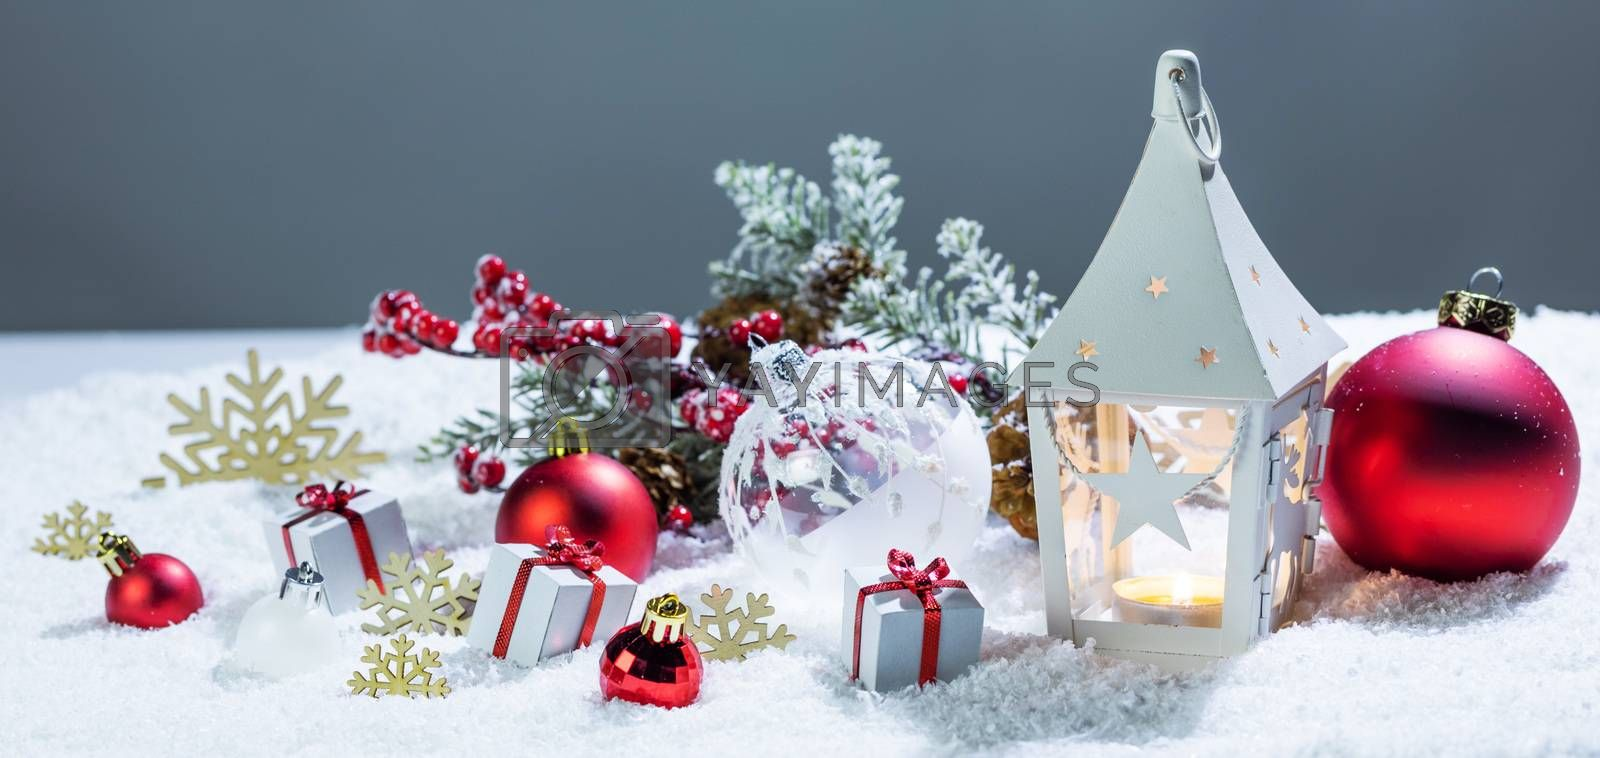 Christmas holidays card with gifts , balls , and white glowing lantern in snow